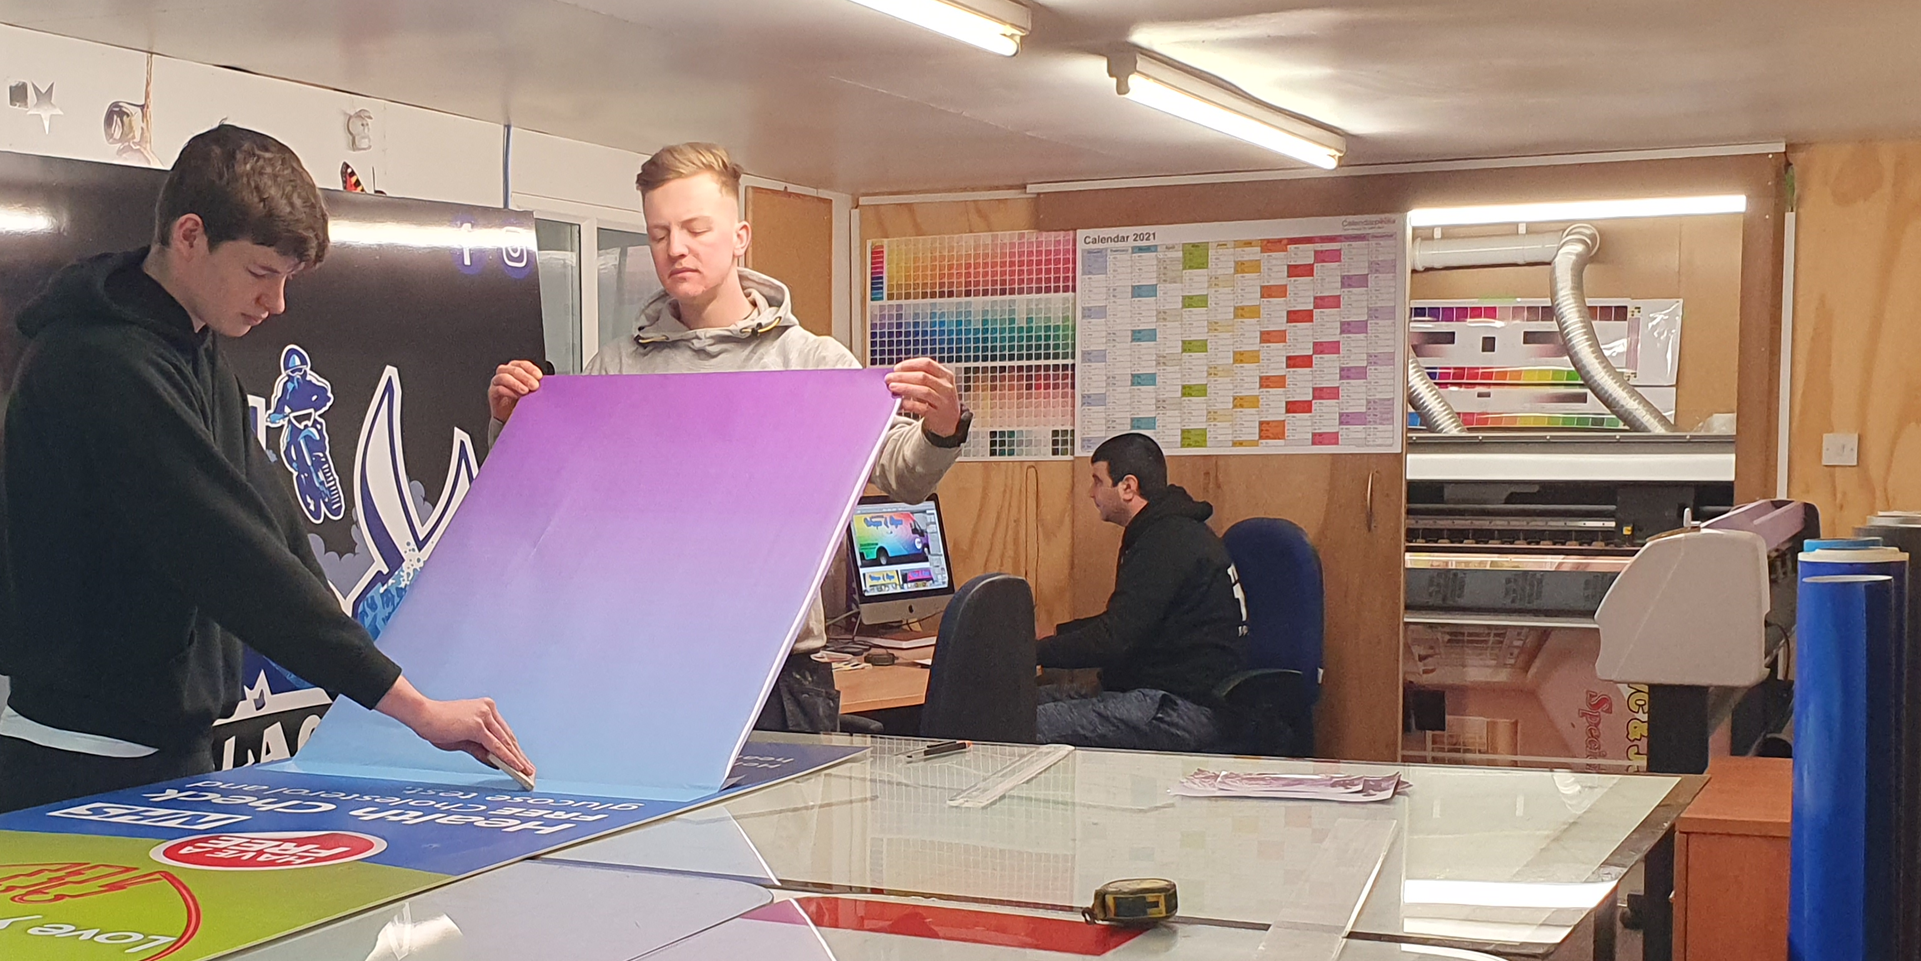 Blackpool Signs and Wraps workshop